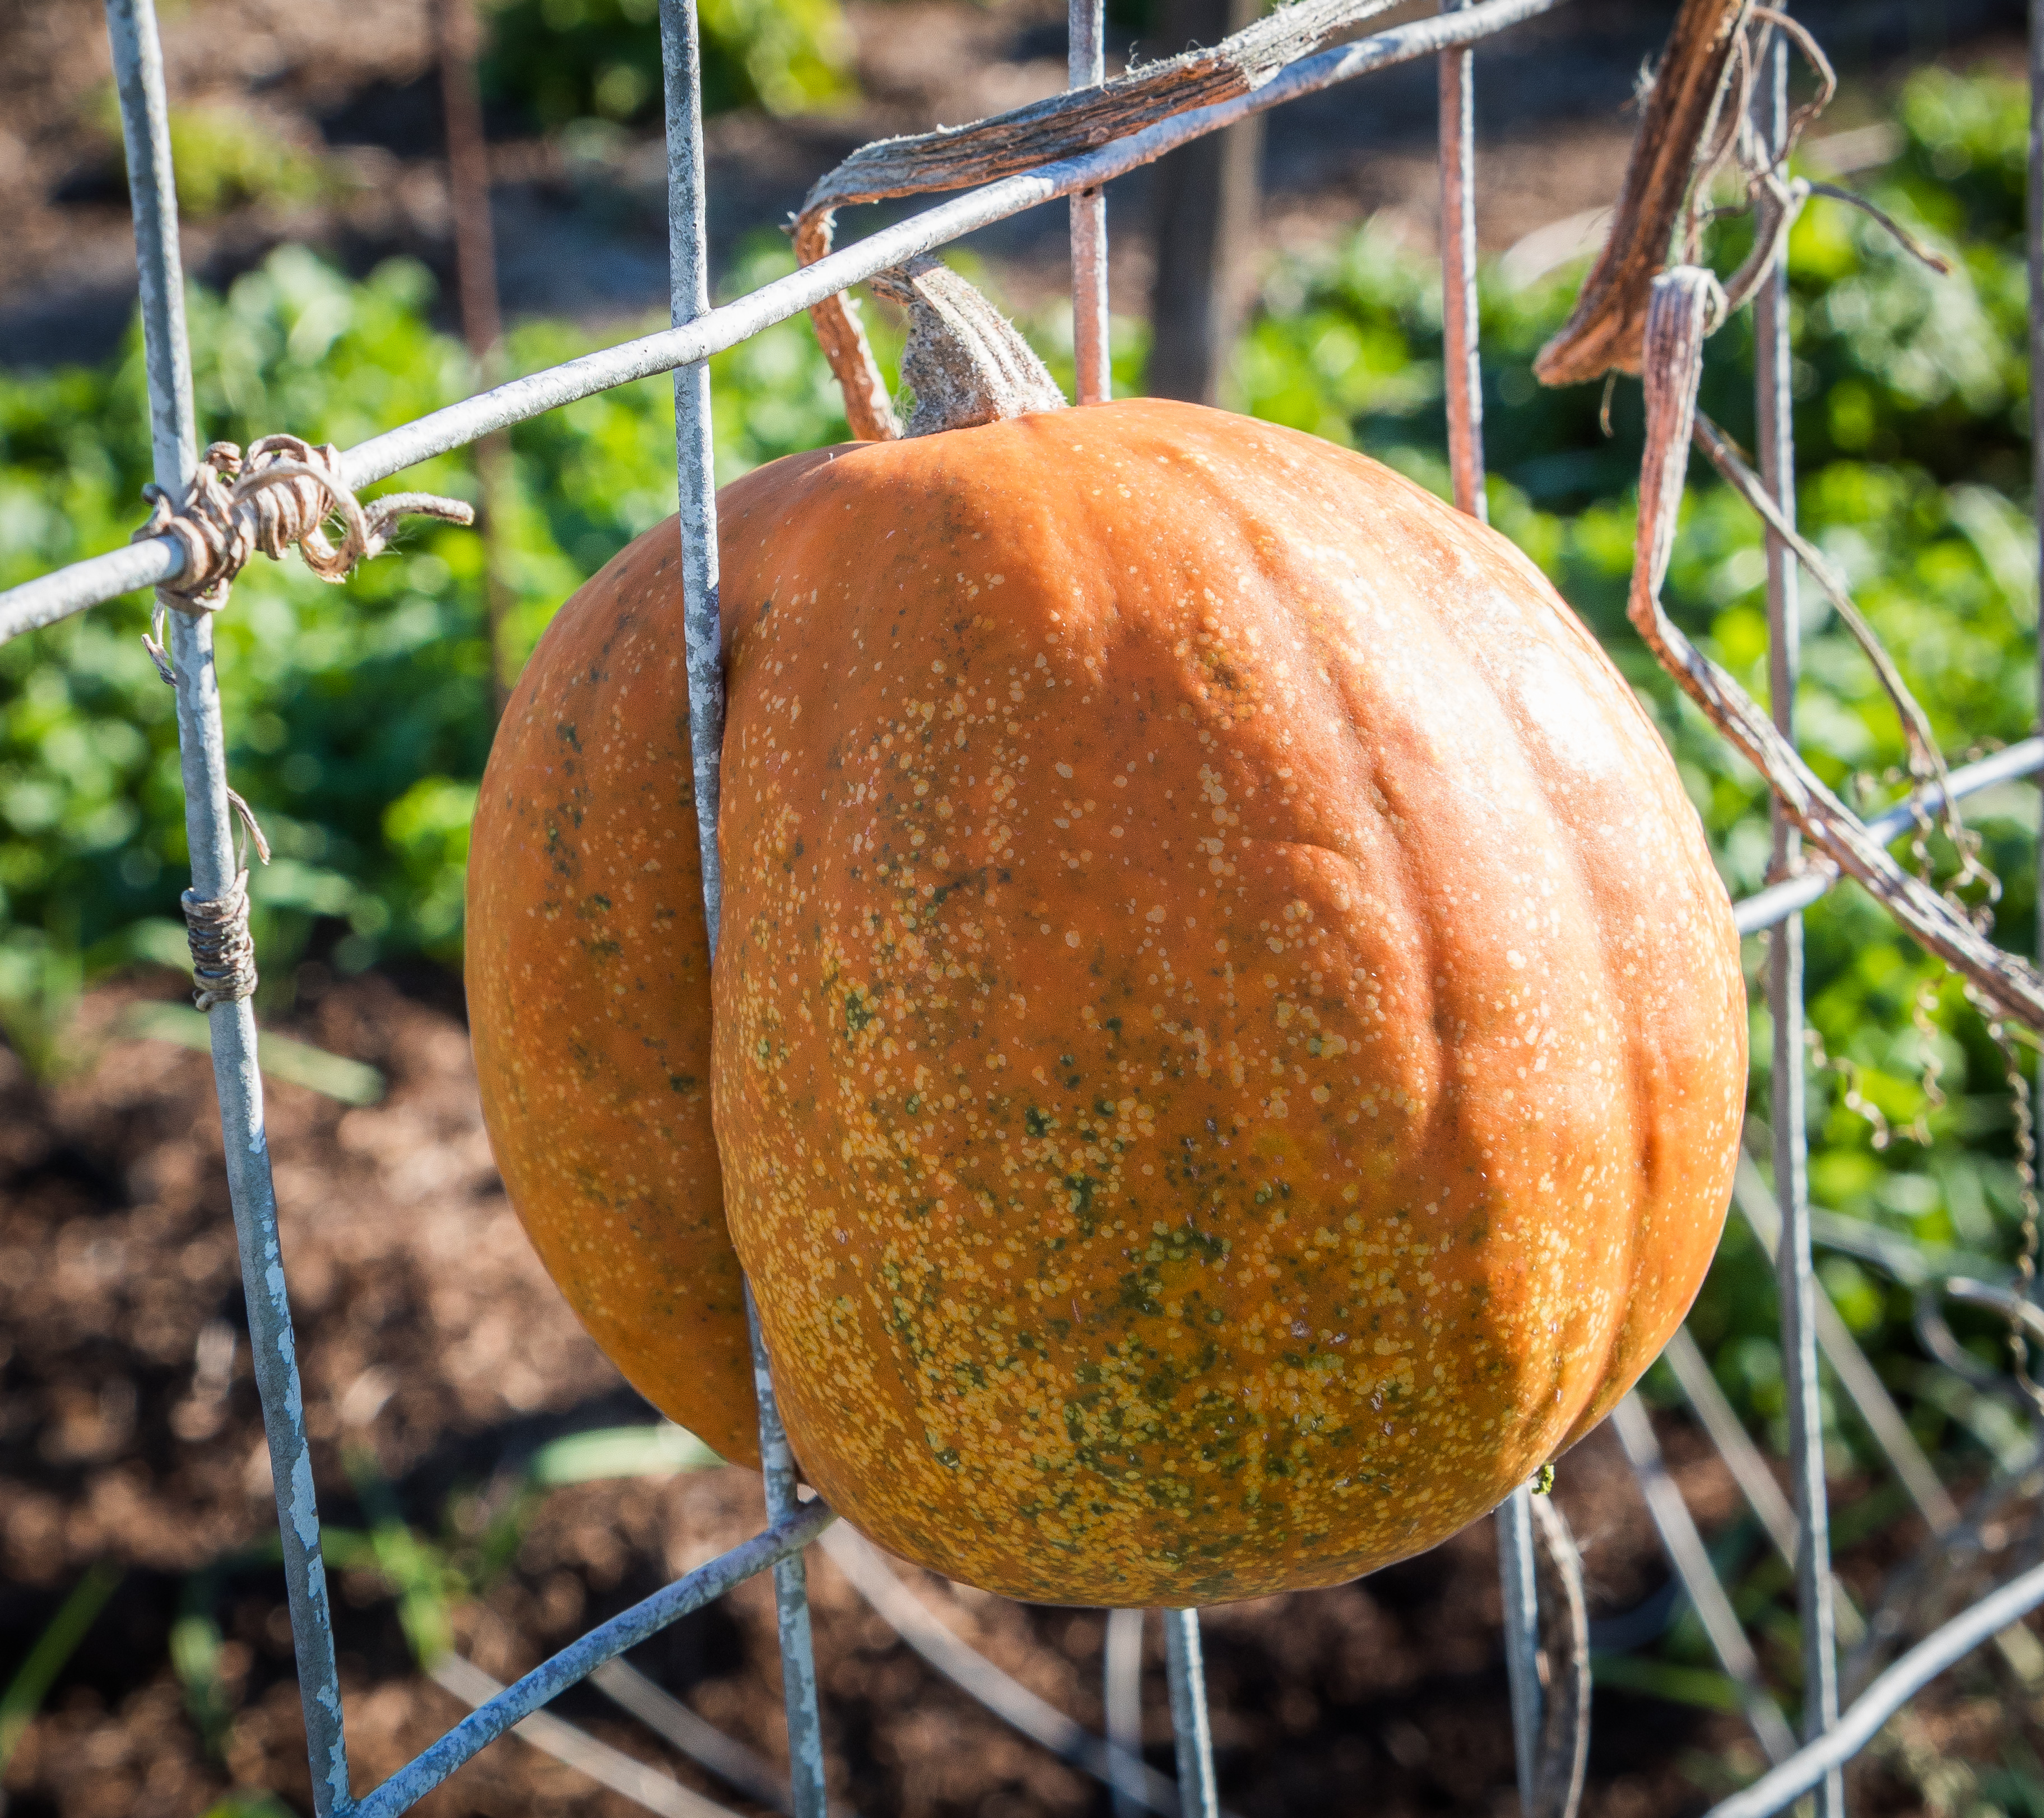 This little pumpkin has been growing in the fence in the Fermilab Garden area. Photo: Elliott McCrory